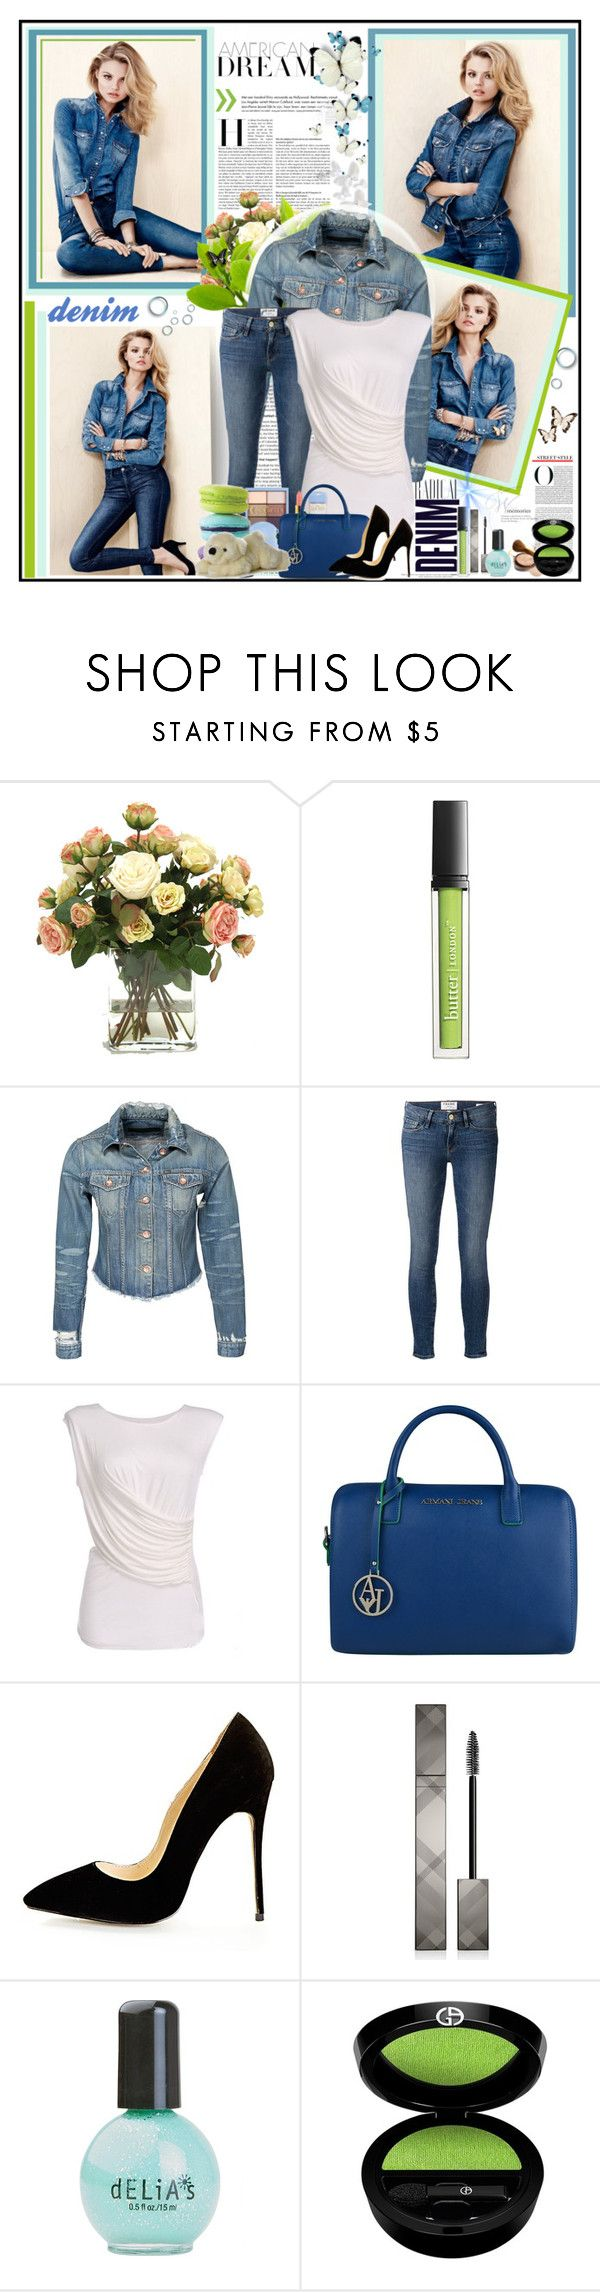 """""""Denim"""" by goharkhanoyan ❤ liked on Polyvore featuring Alima, H&M, Distinctive Designs, Butter London, Tiger of Sweden, Frame Denim, Armani Jeans, CO, Burberry and Giorgio Armani"""